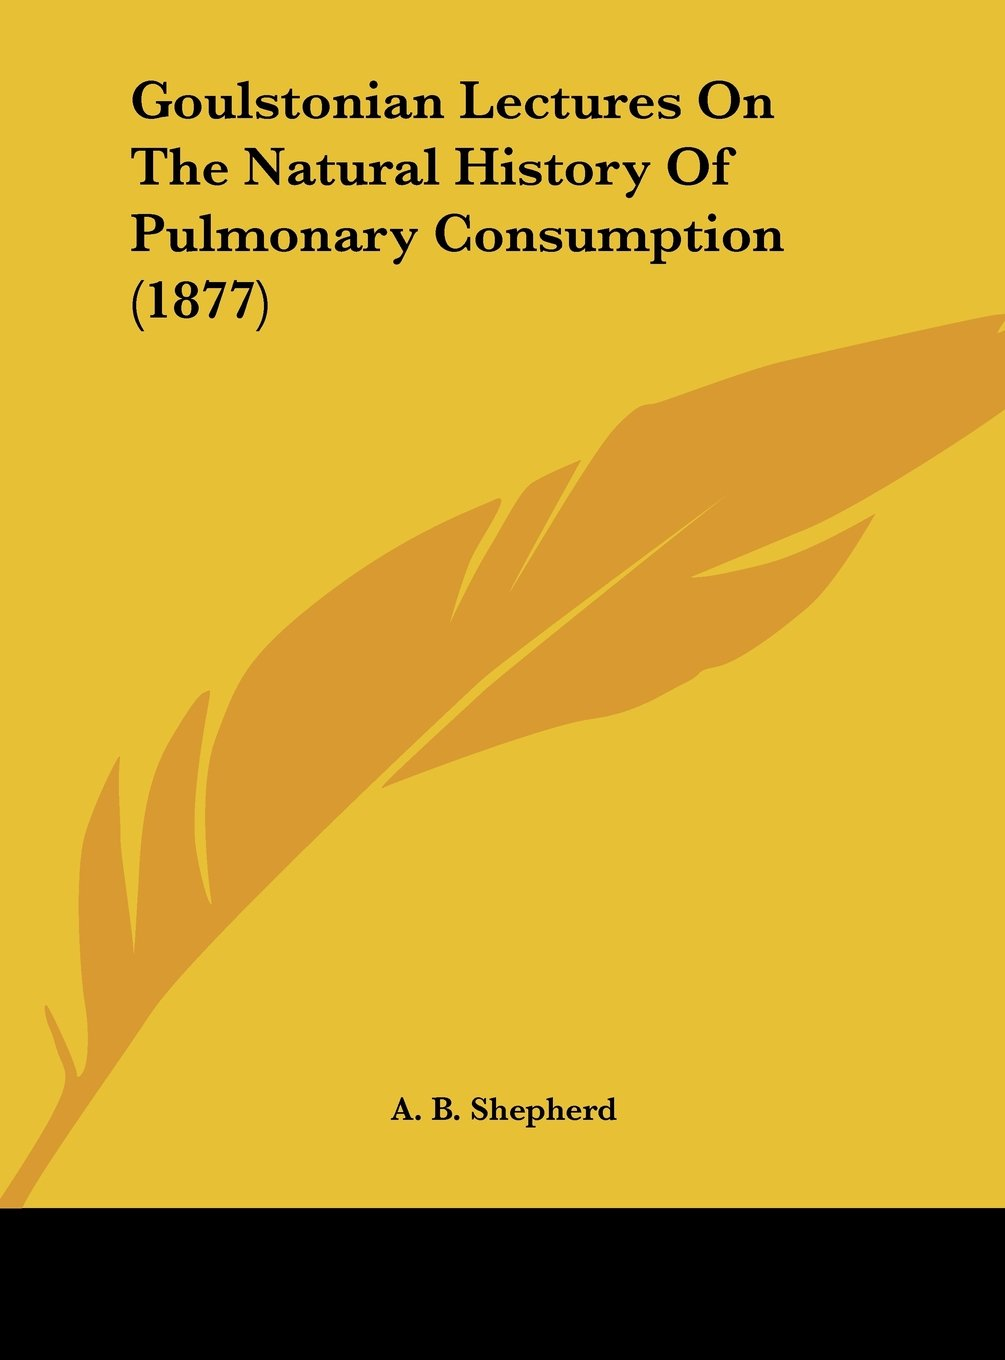 Download Goulstonian Lectures on the Natural History of Pulmonary Consumption (1877) ebook